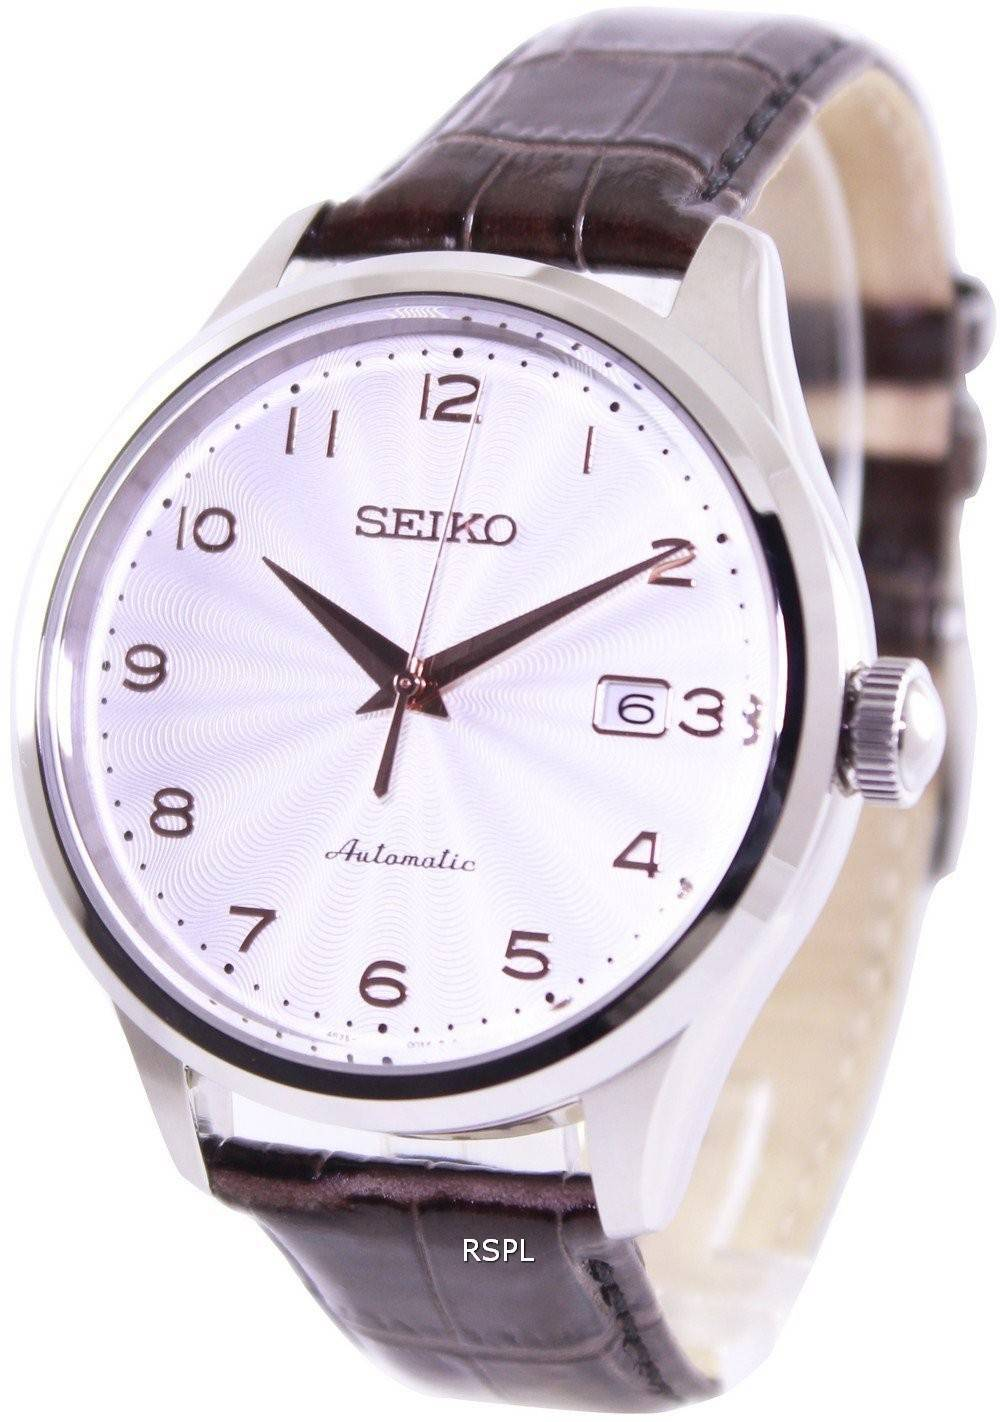 seiko warranty watches showthread creation